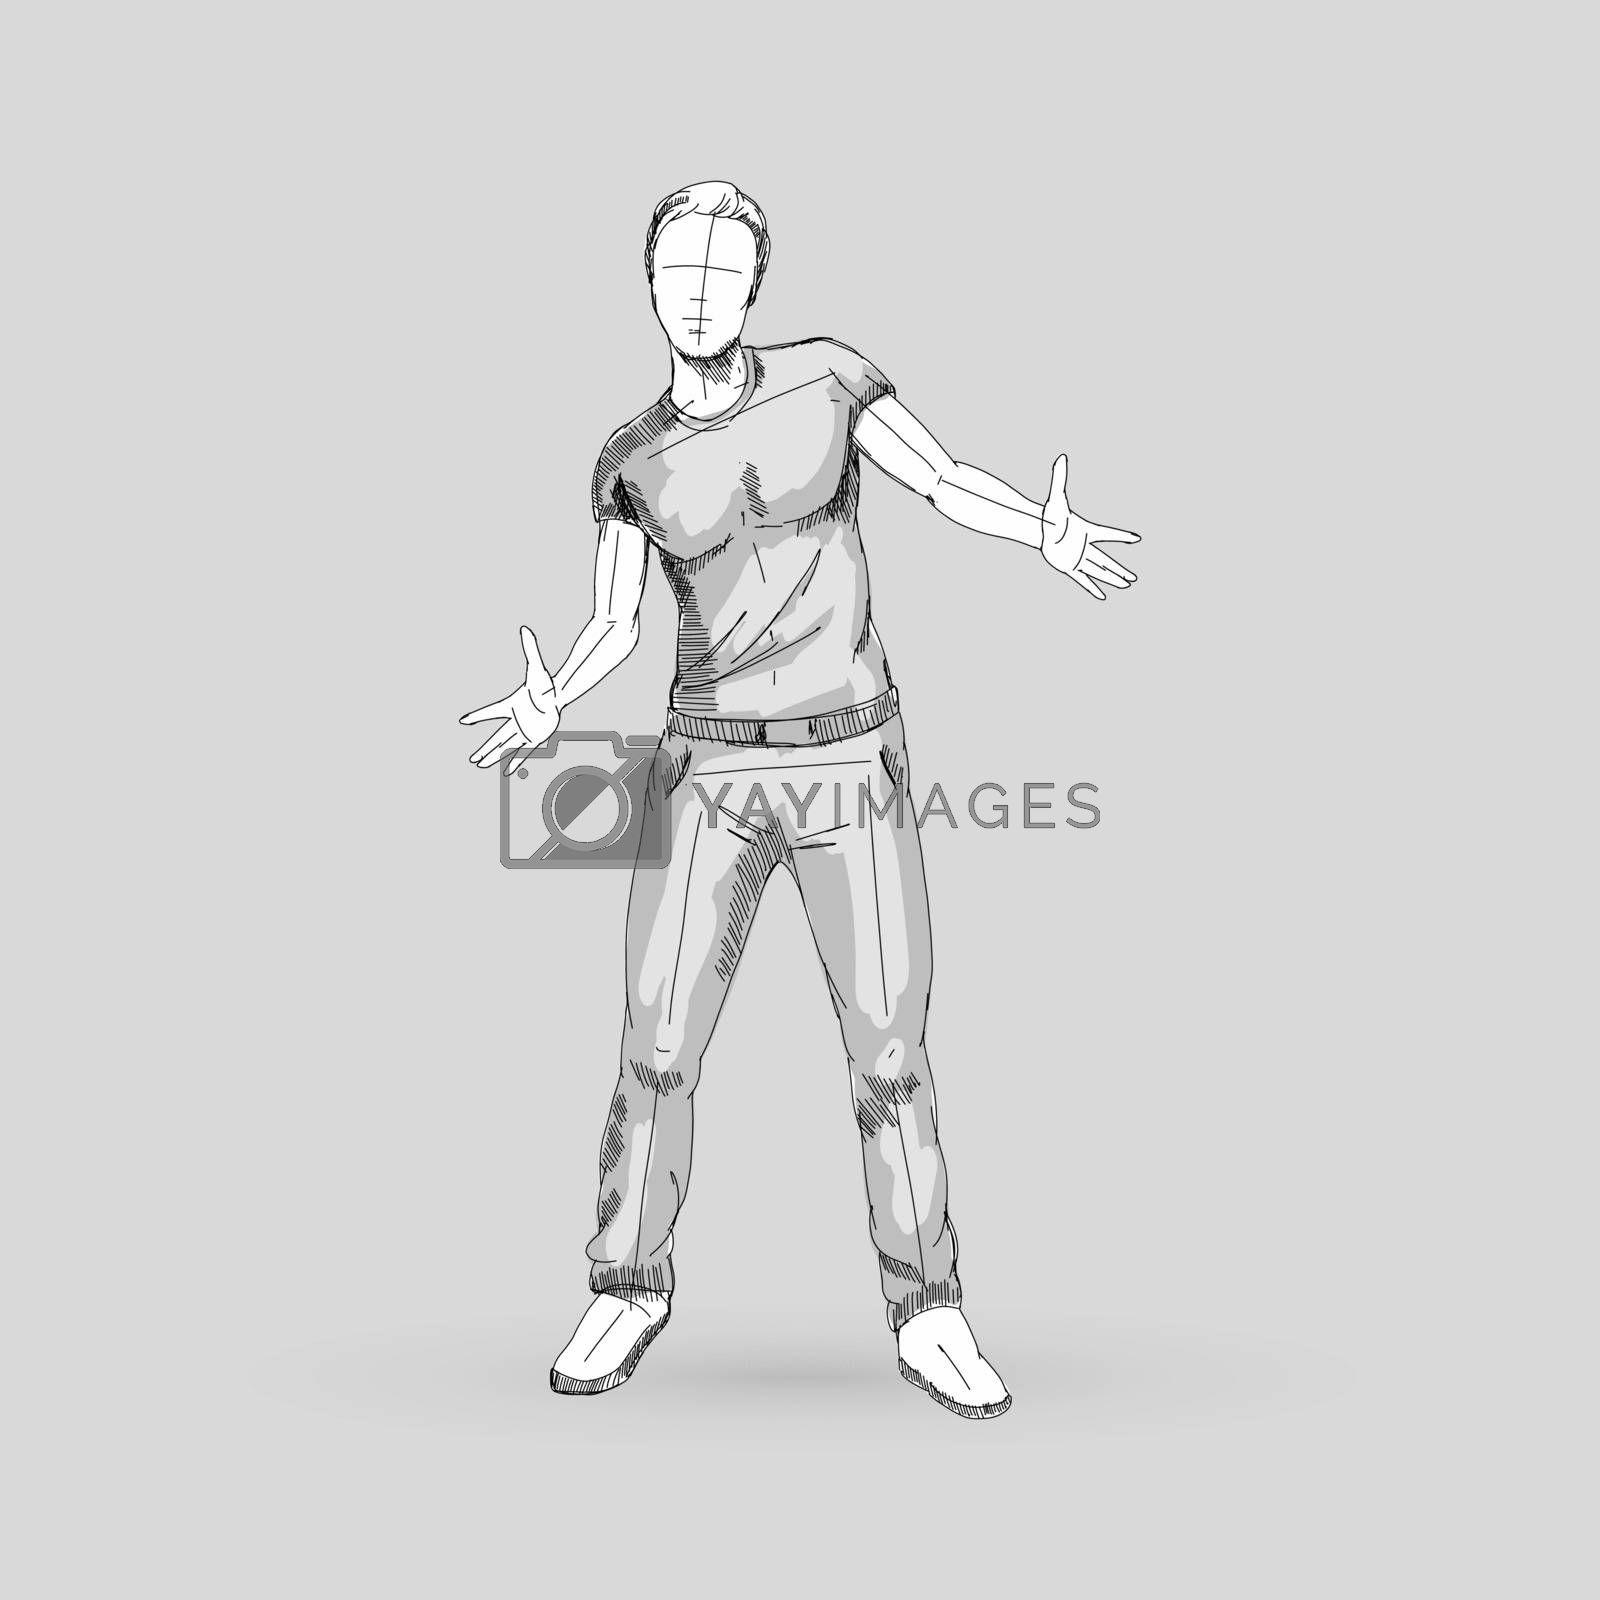 Modern Style Dancer Sketch of a Man Dancer Hip Hop Choreography